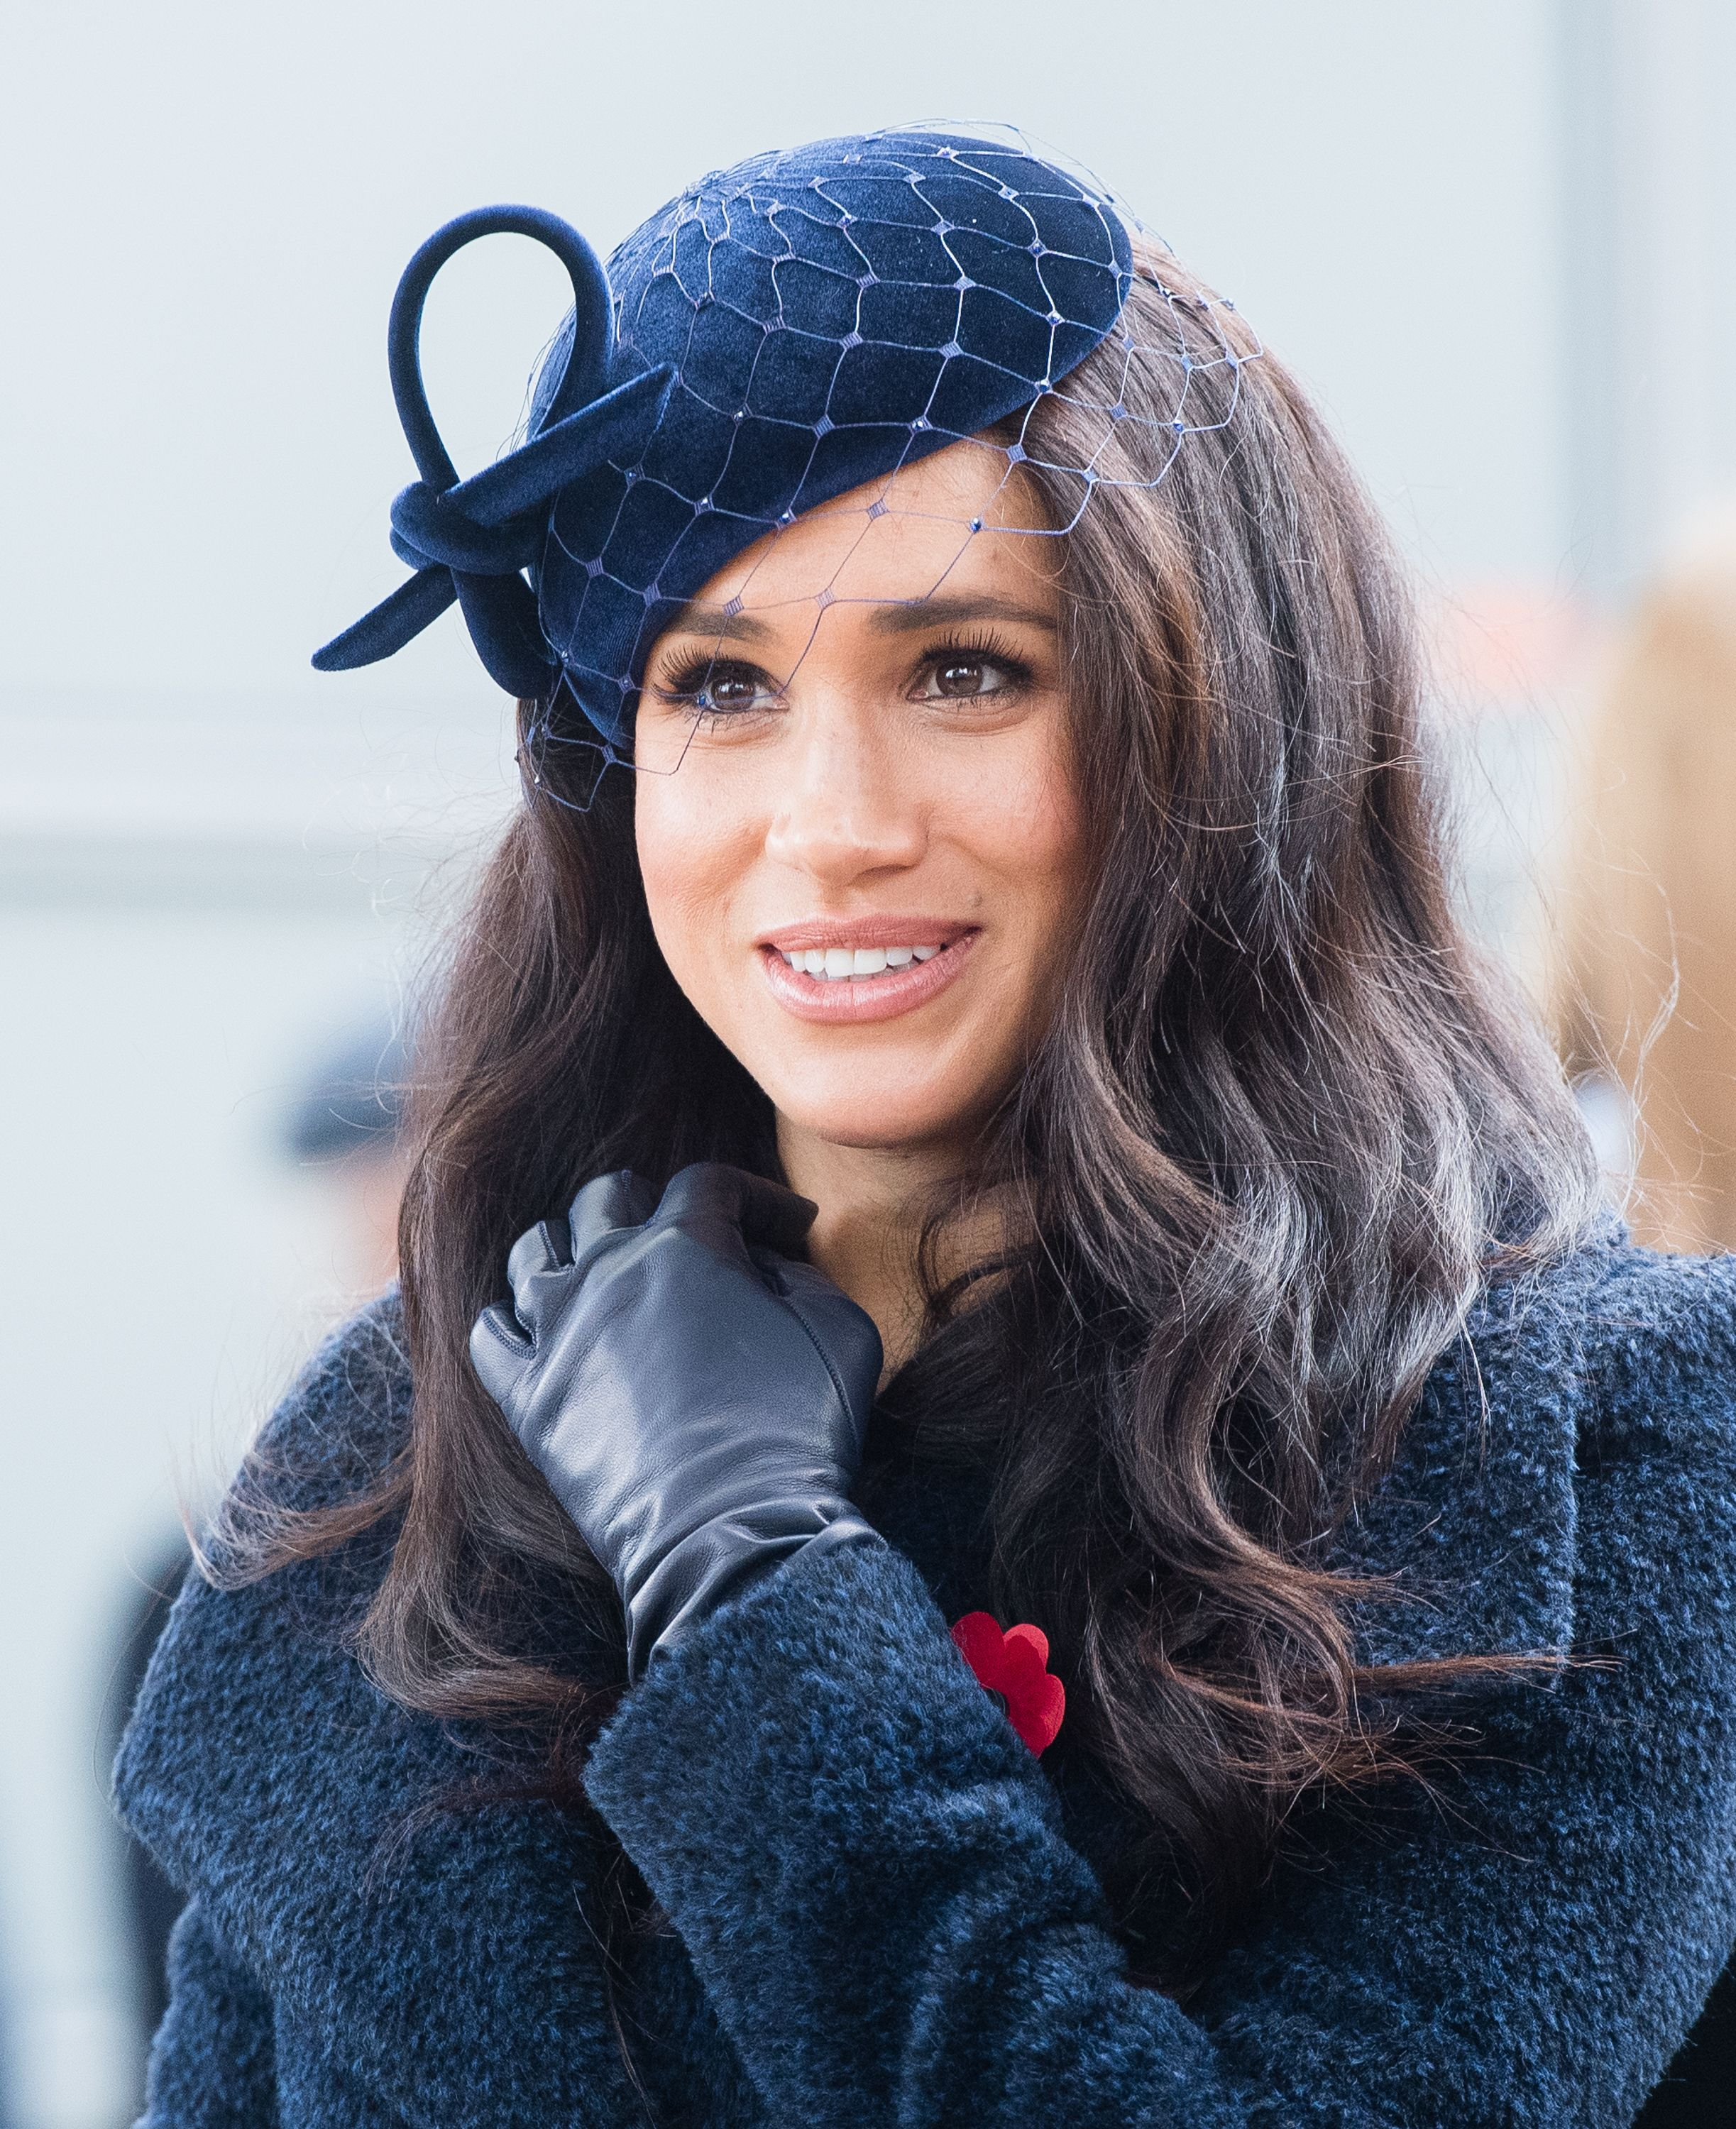 meghan markle makes private visit to justice for girls see photos here meghan markle makes private visit to